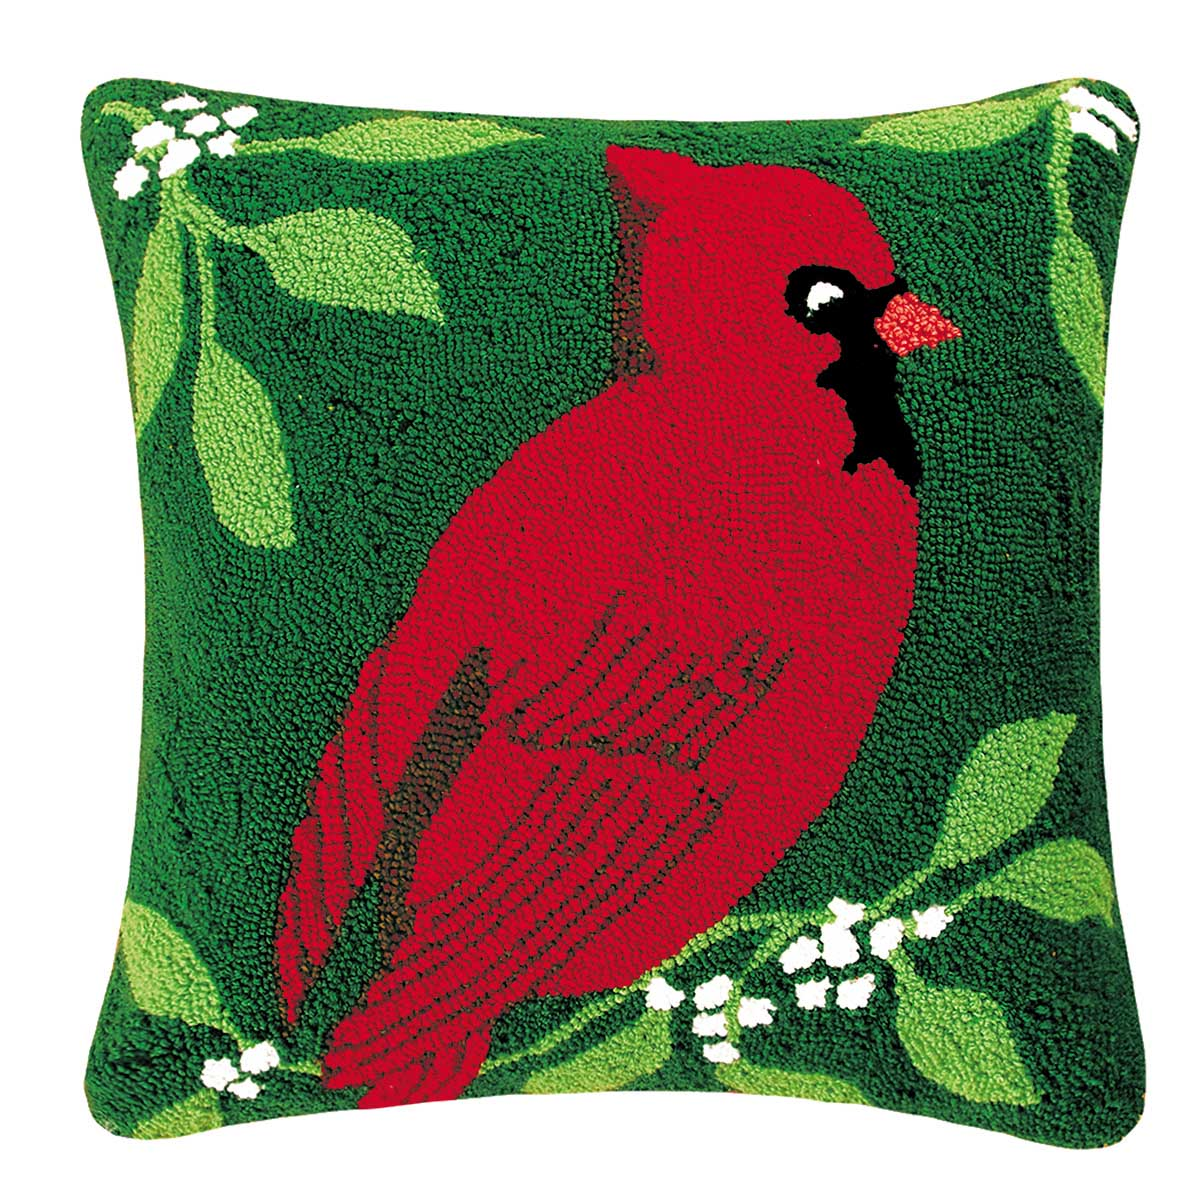 C&F Home_Carol's Attic_Decorative Pillows_Seasonal.jpg